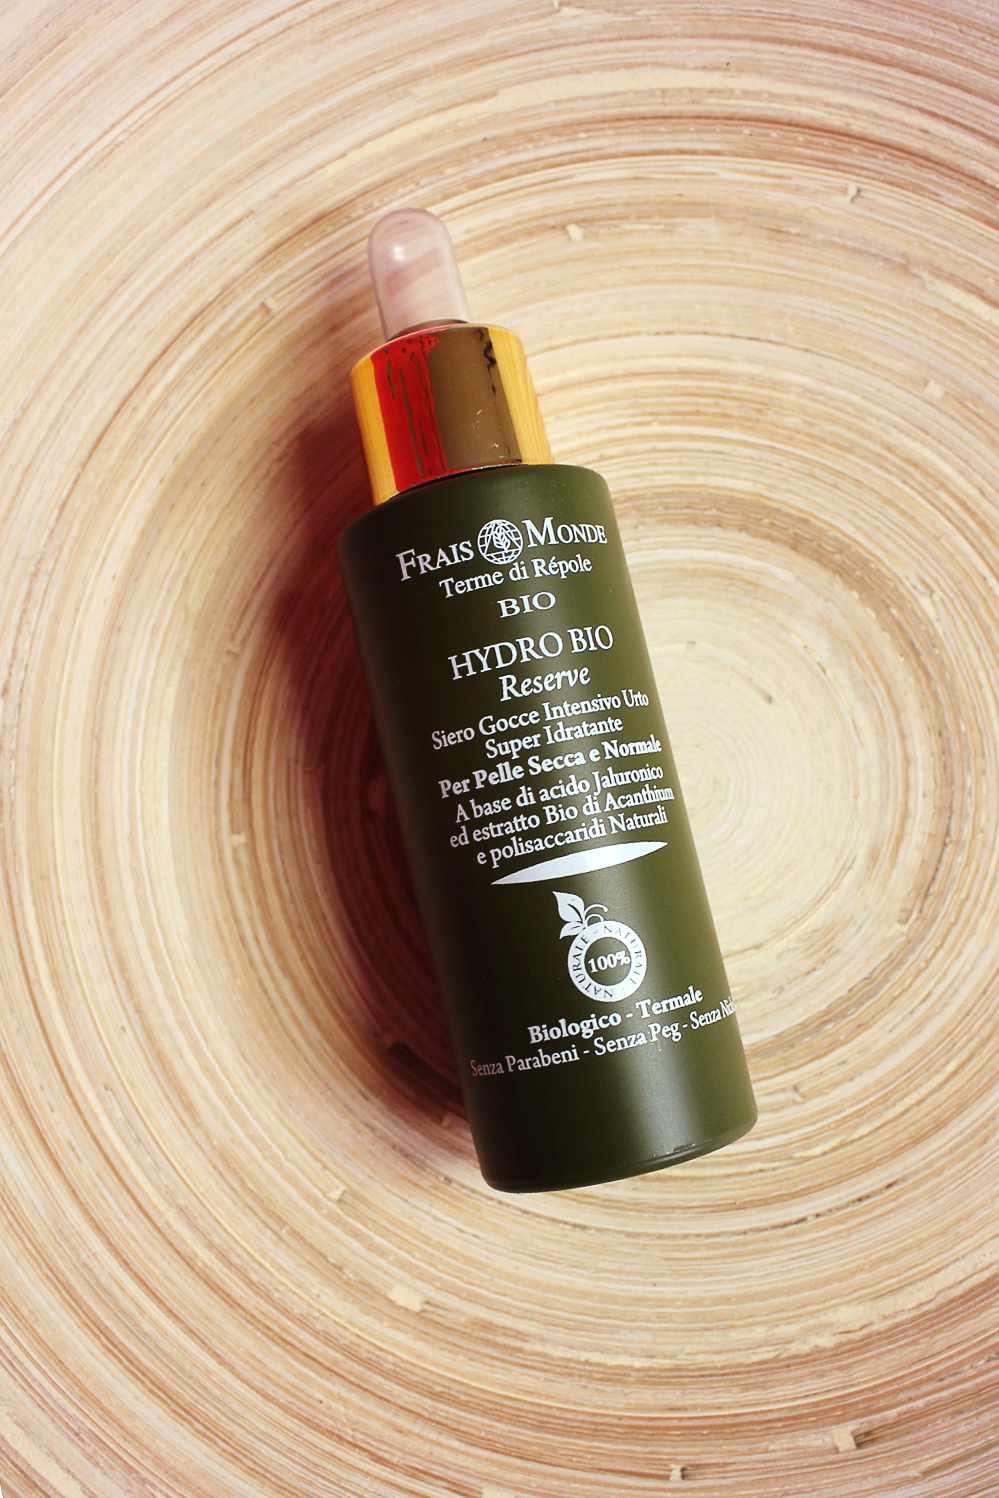 Frais Monde Intensive Serum Super Hydrating